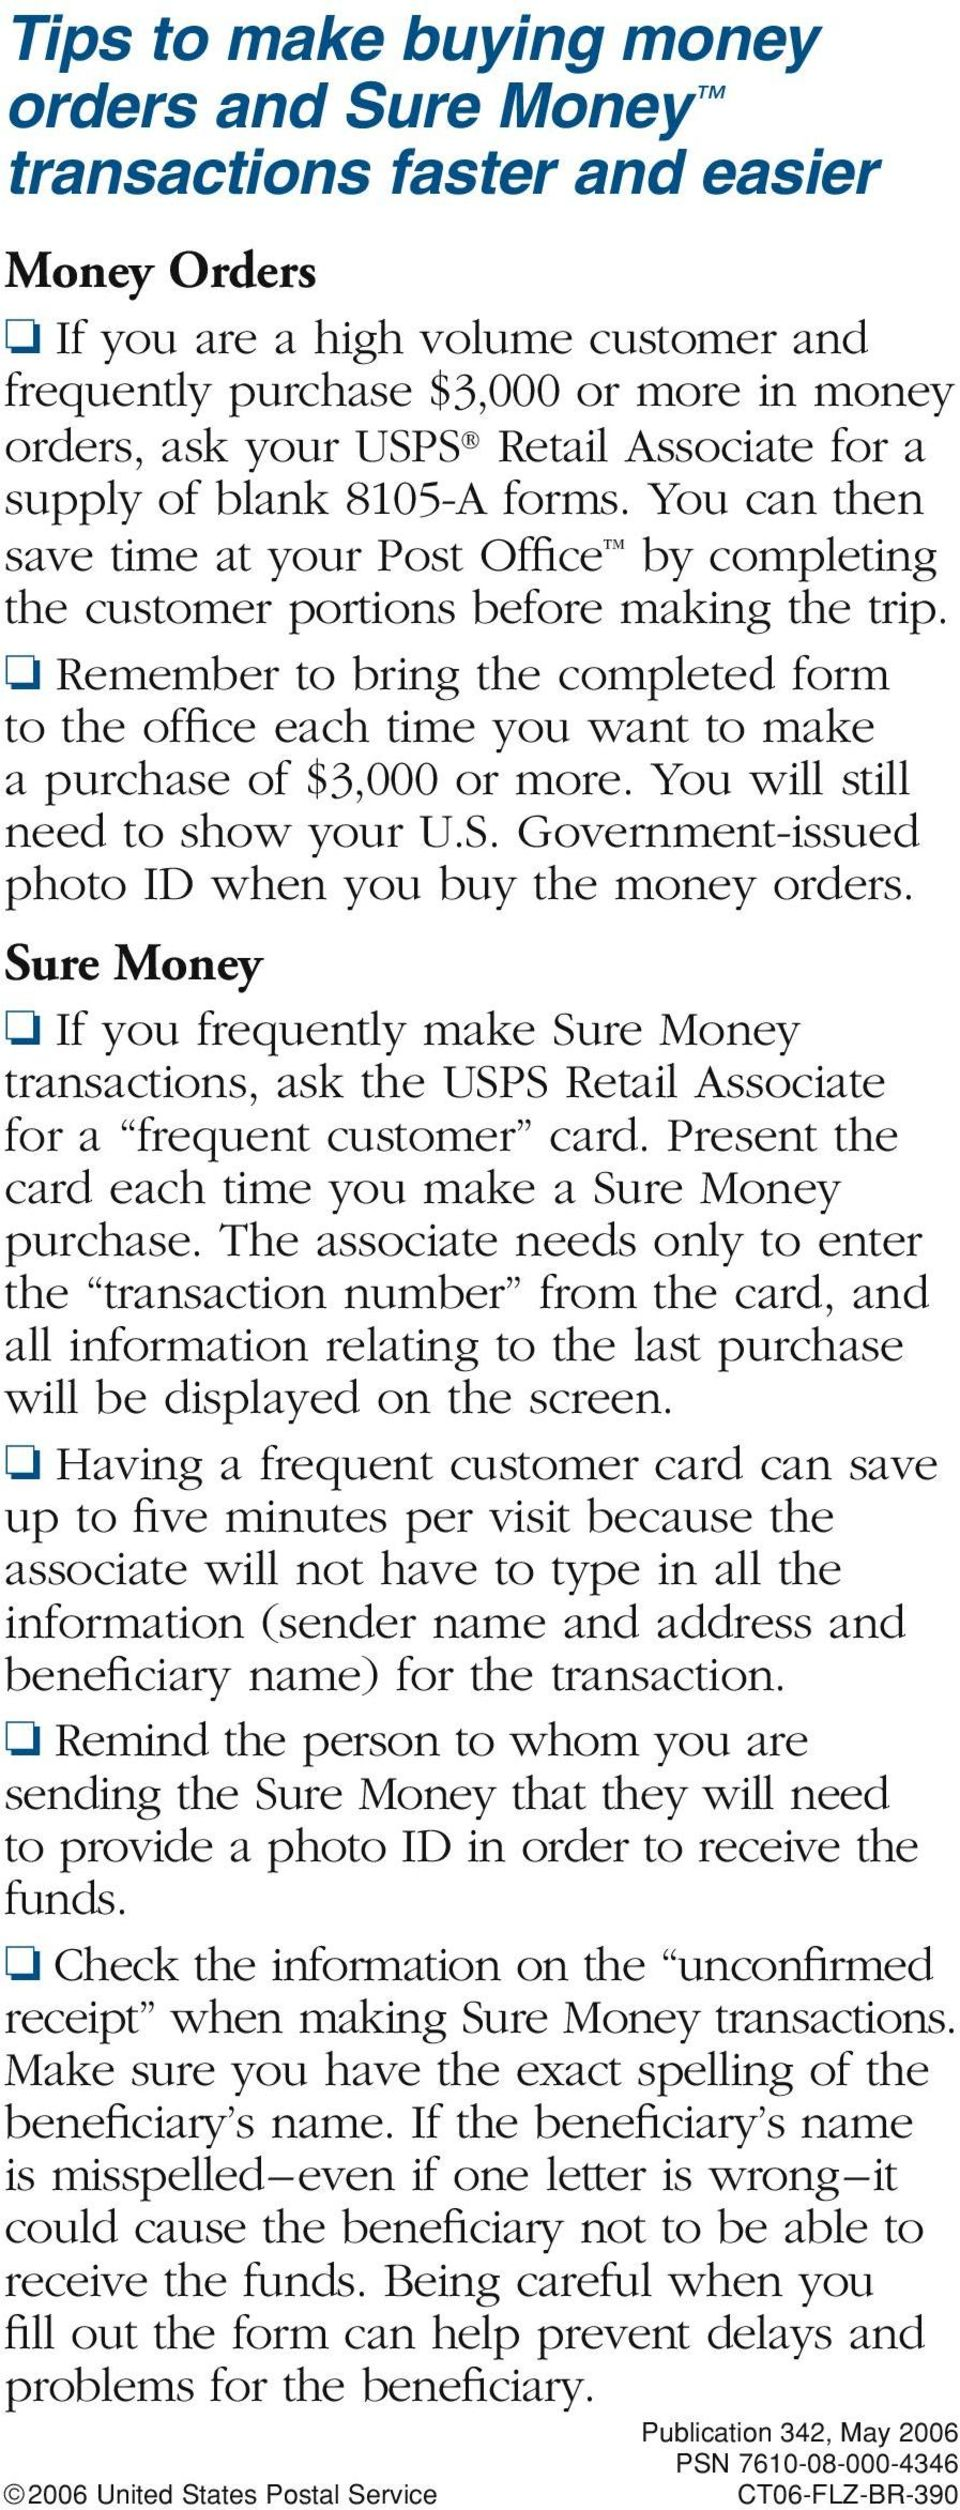 Remember to bring the completed form to the office each time you want to make a purchase of $3,000 or more. You will still need to show your U.S.